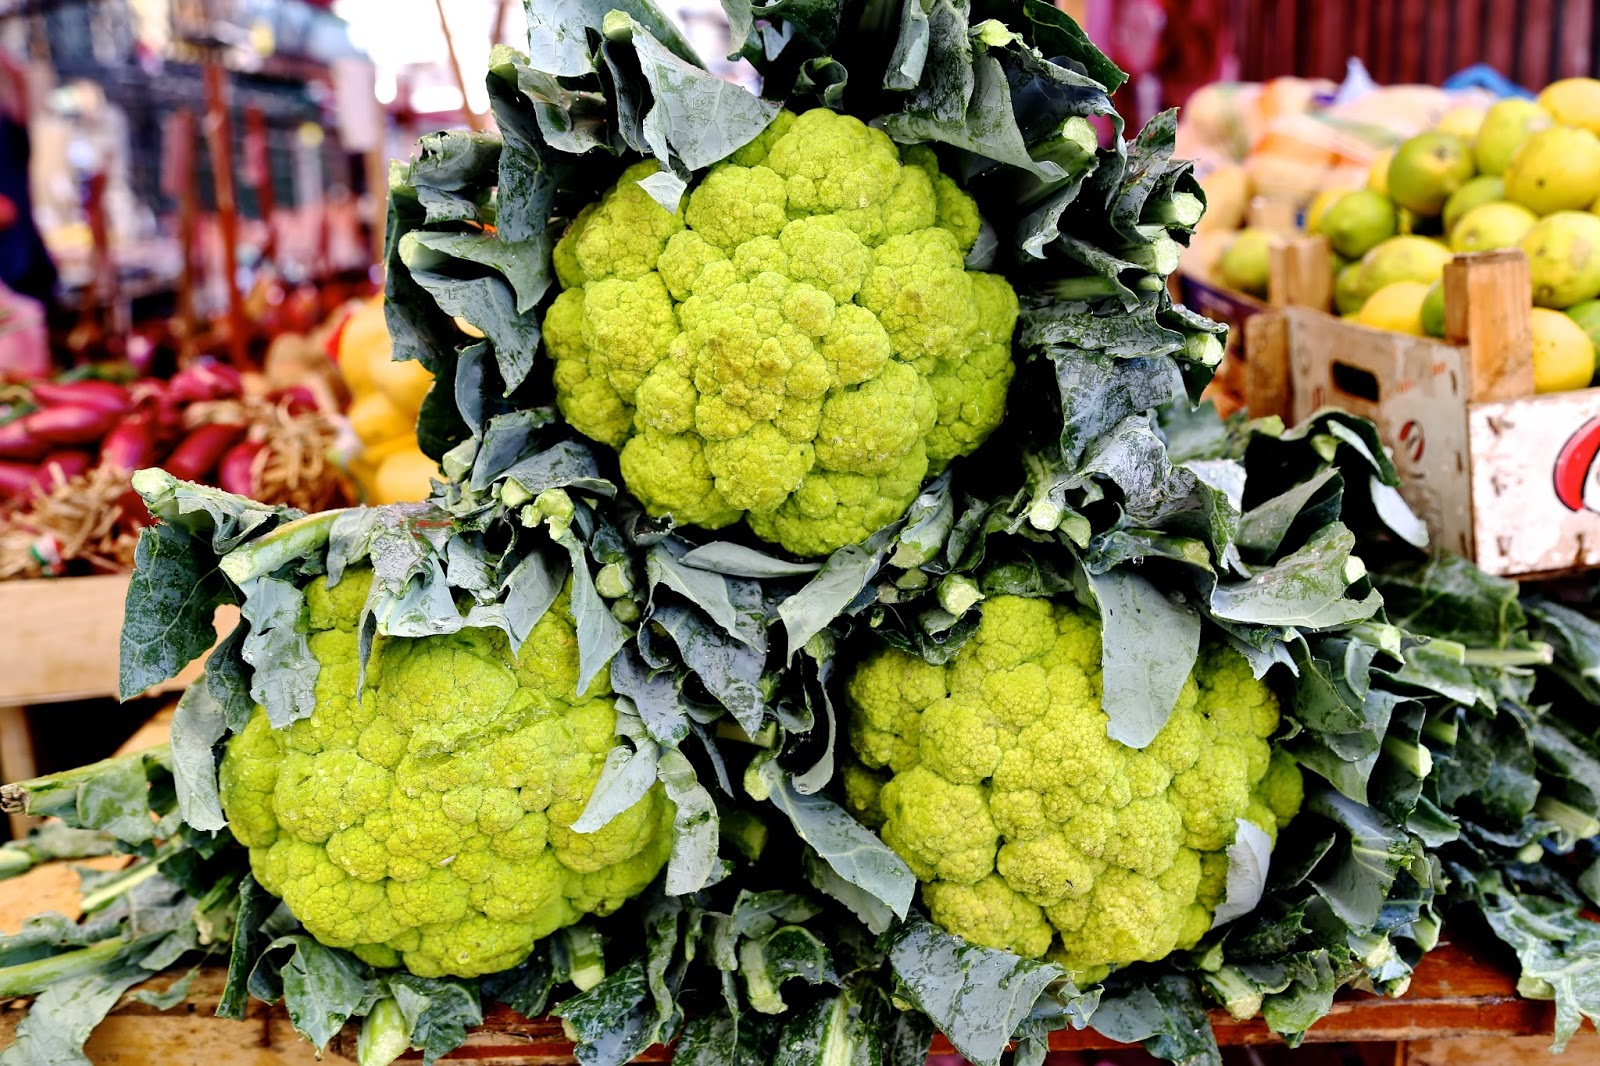 Large green cauliflowers, Palermo, Sicily